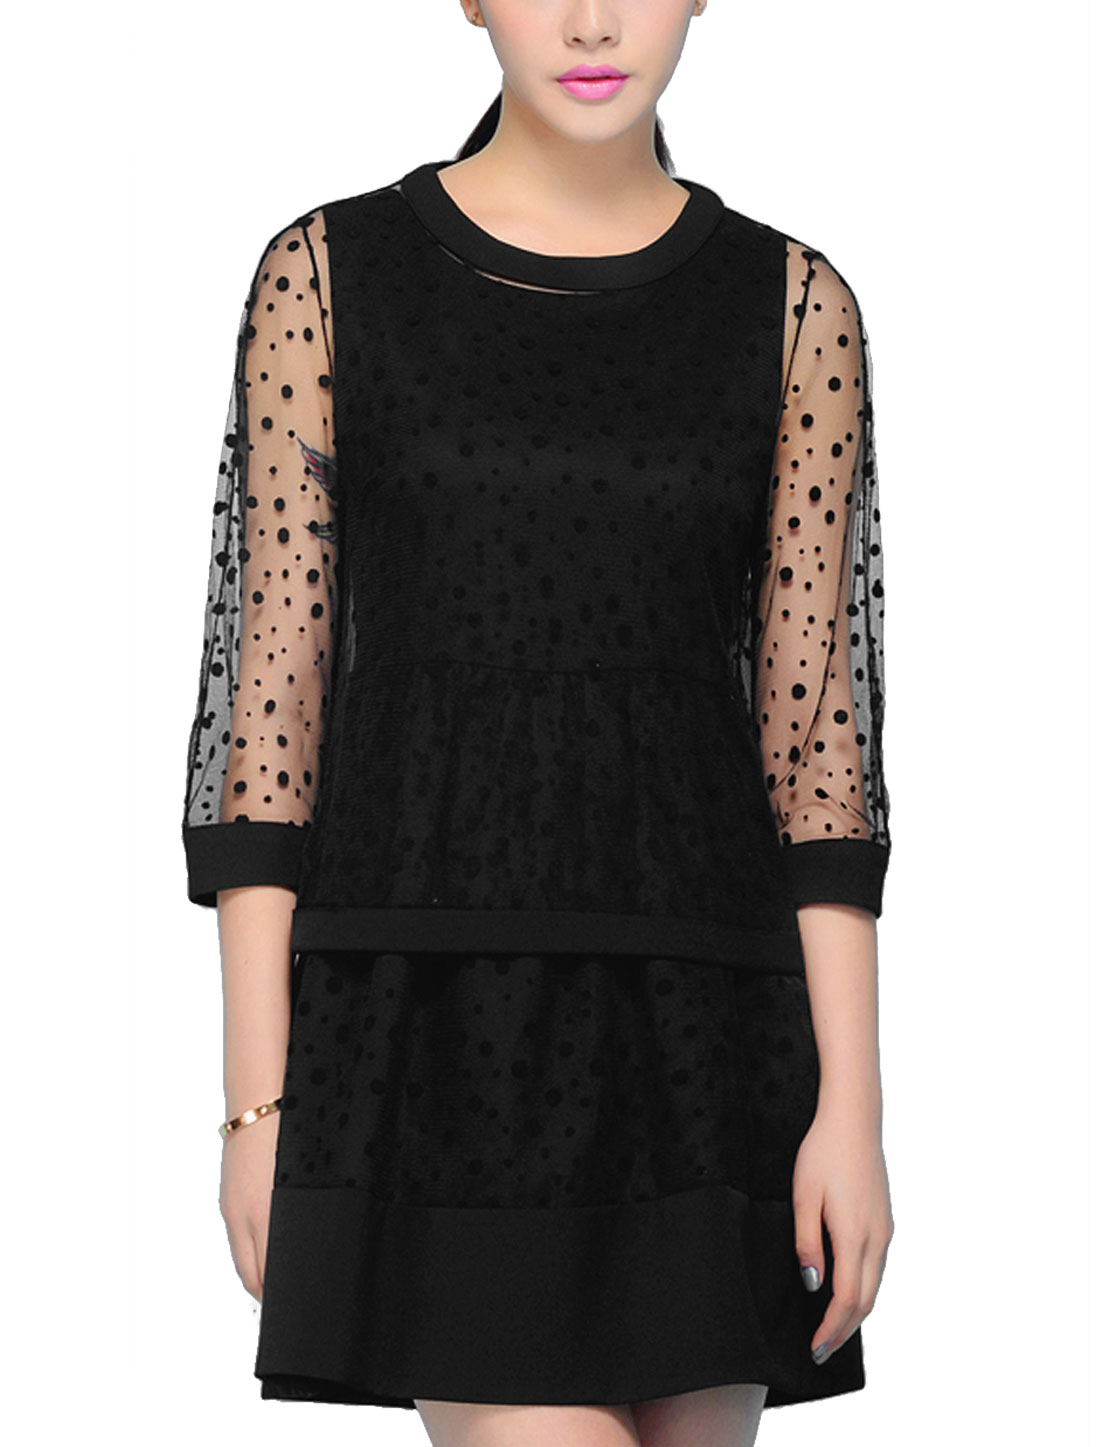 Lady Sleeveless Round Neck Black Dress w Elastic Loop Closure Dots Lace Black Top S